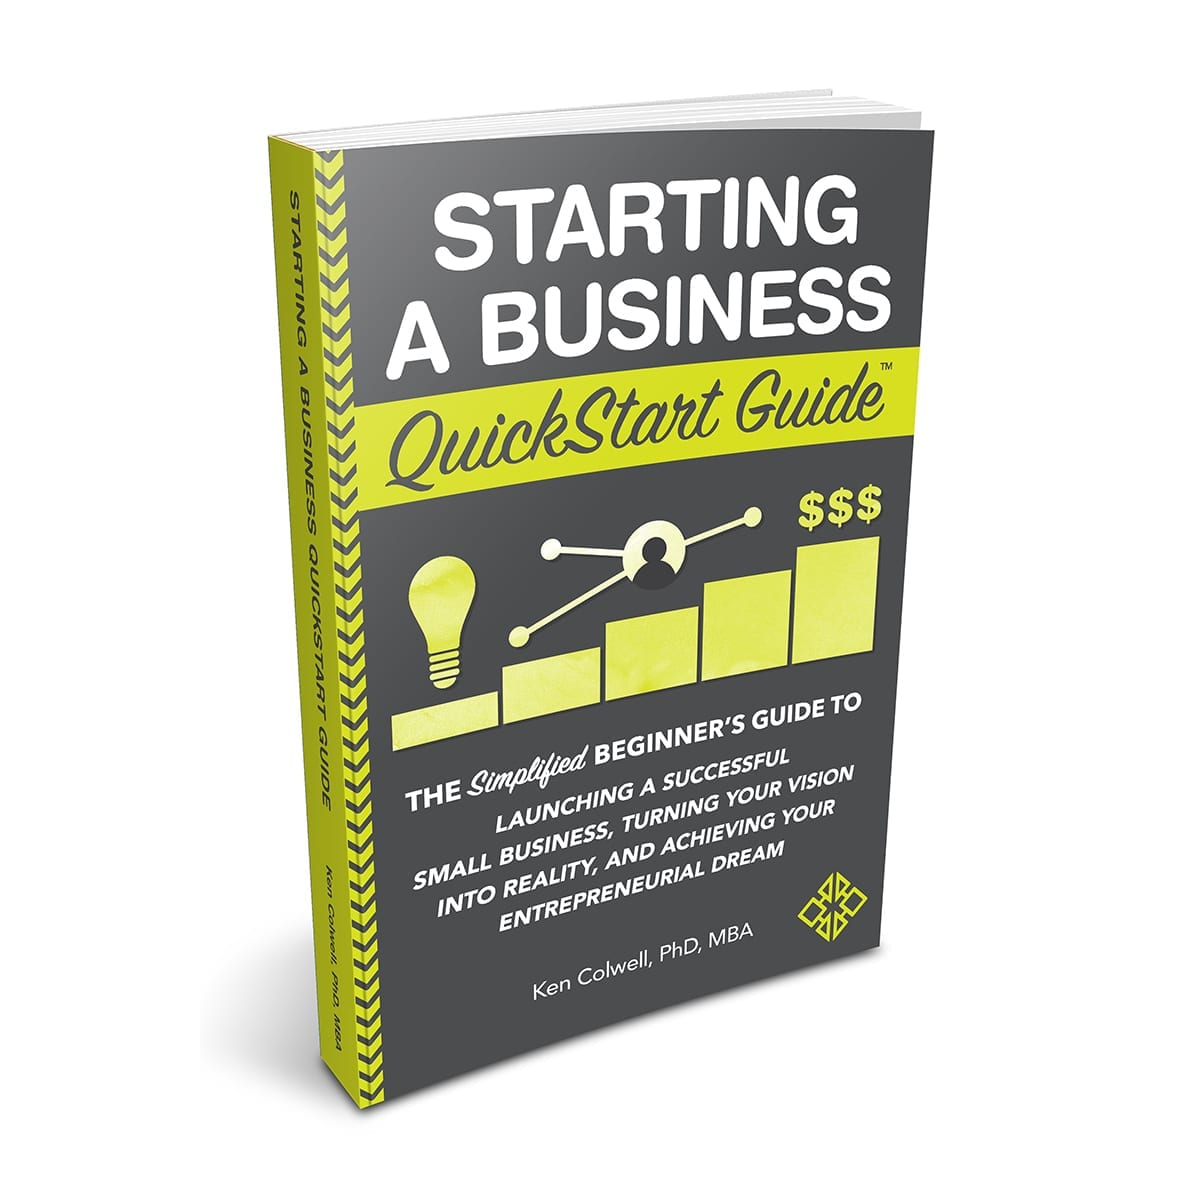 Starting a Business QuickStart by Ken Colwell PhD, MBA